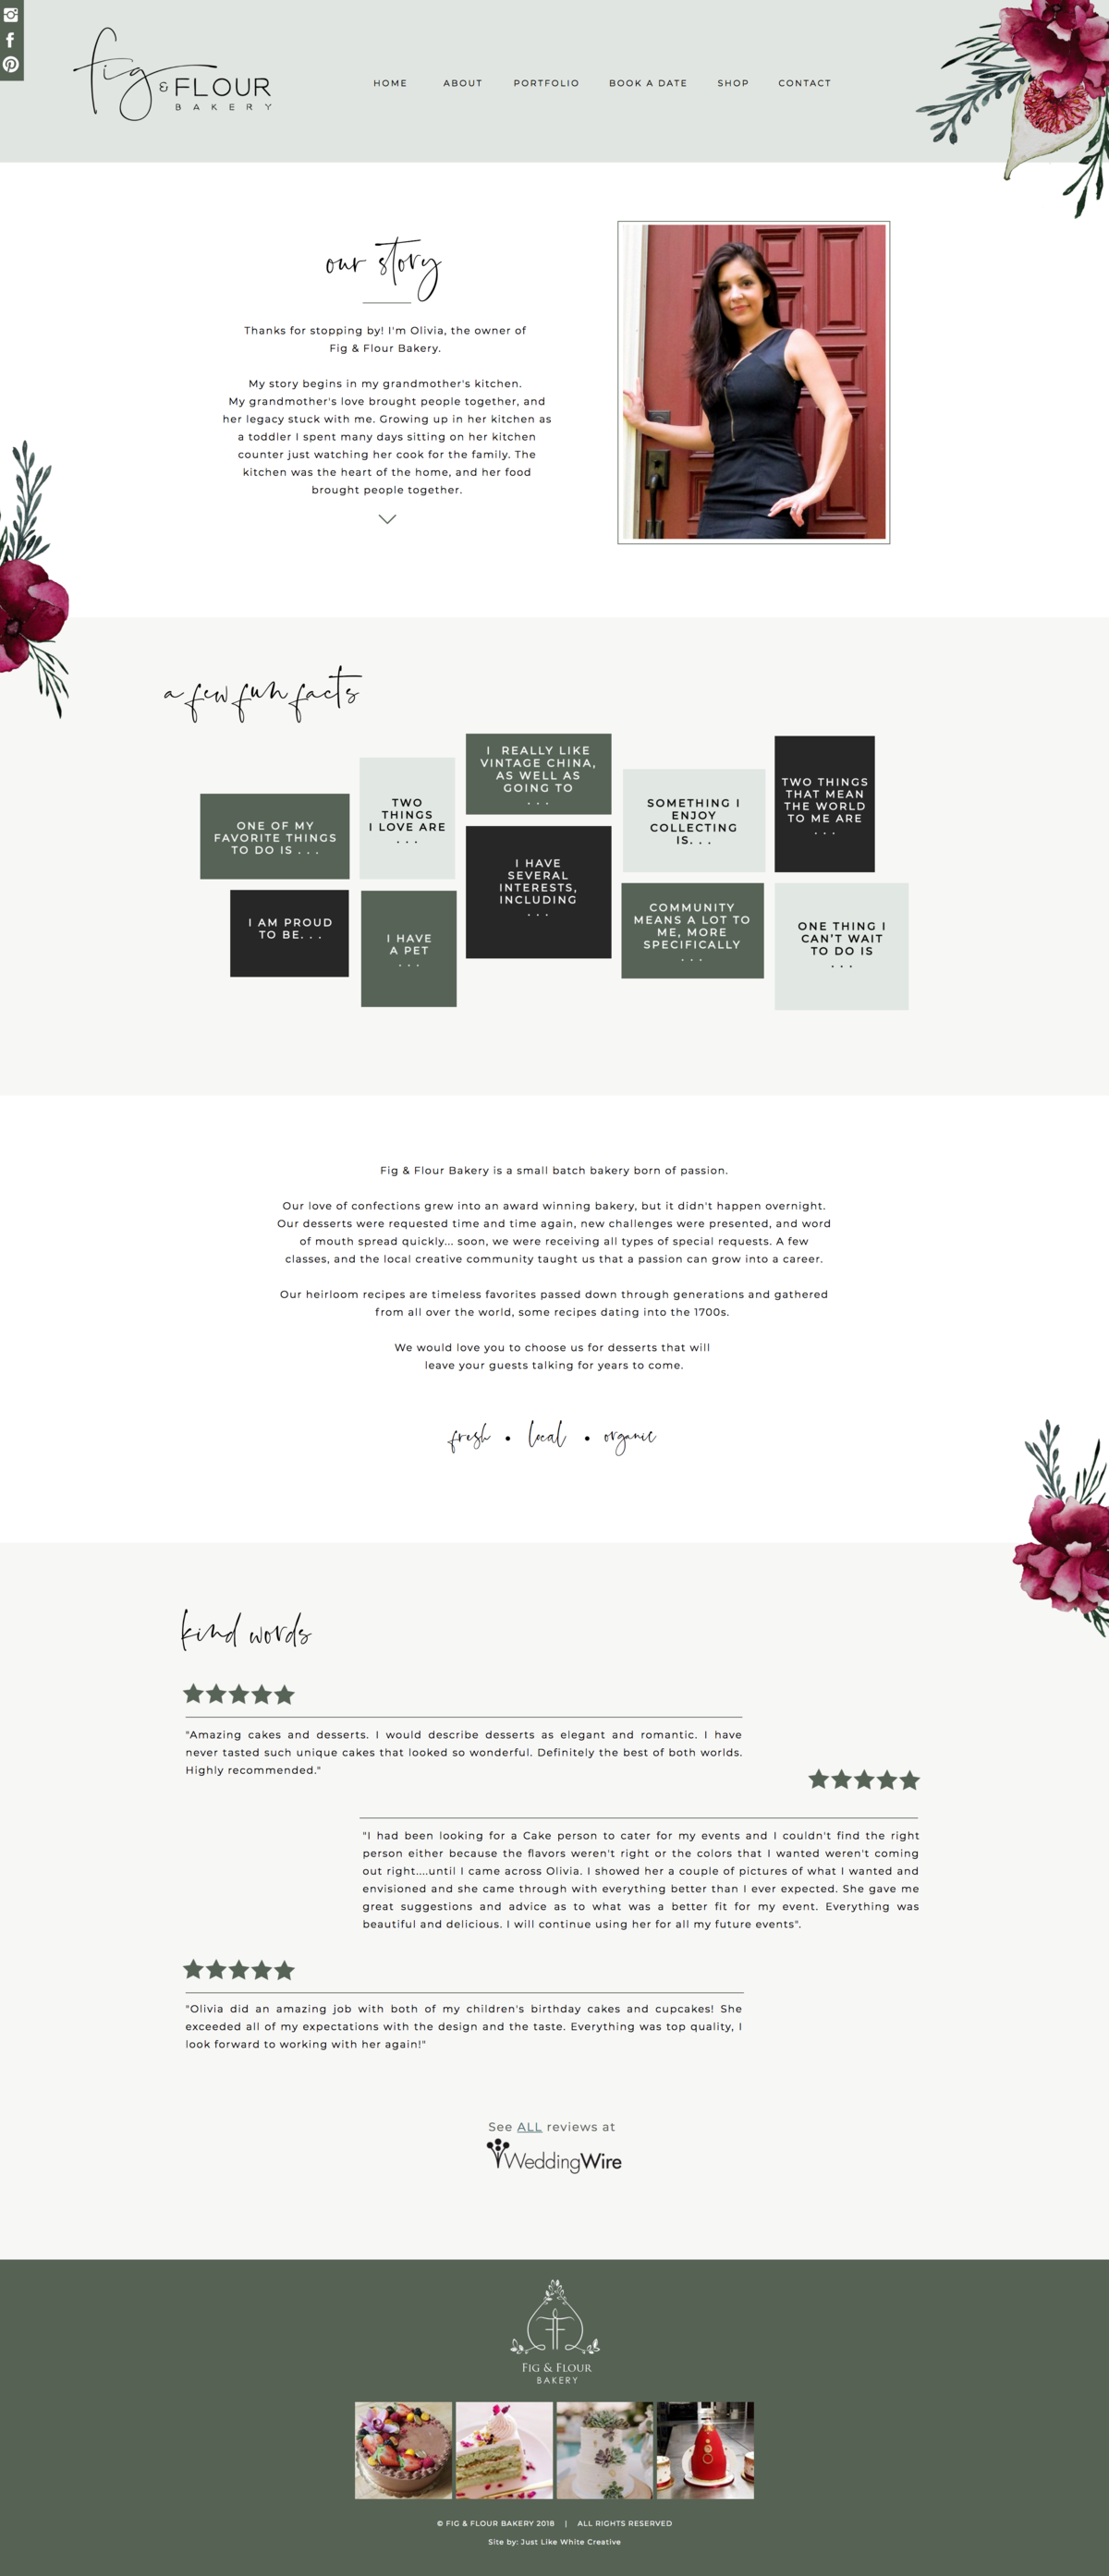 Flowery web design by Tribble Design Co.